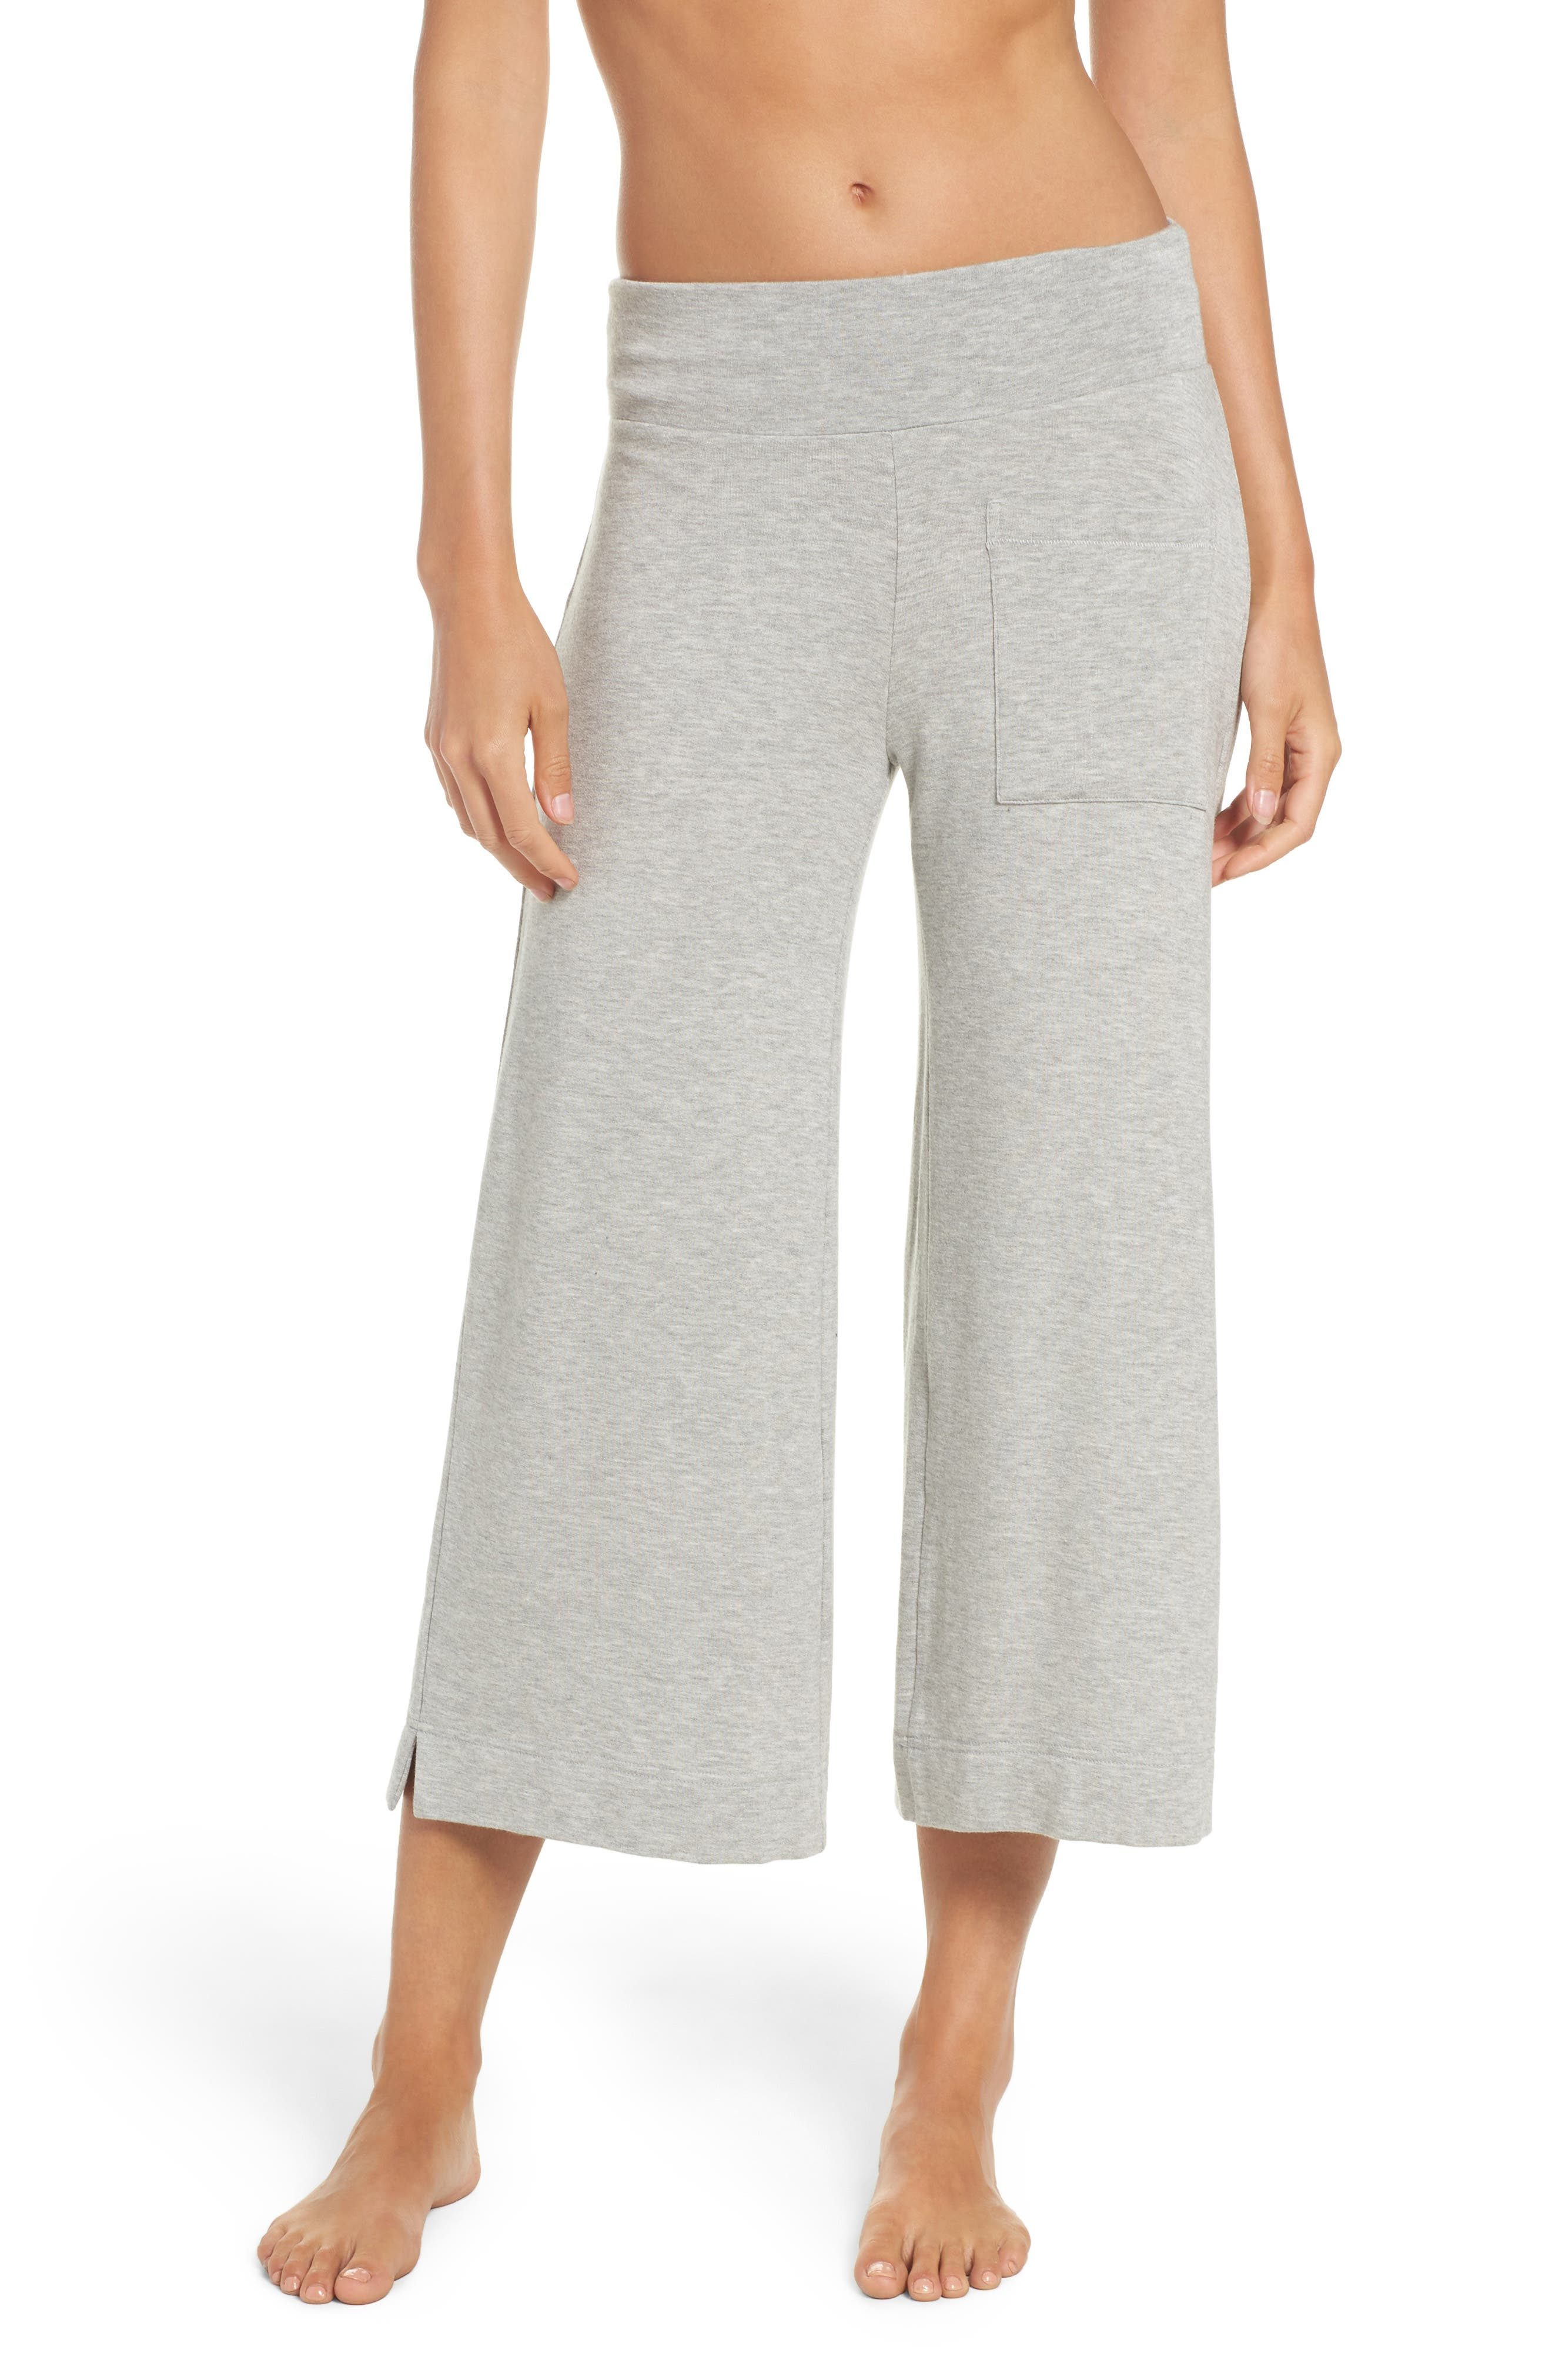 Main Image - SPLITS59 Runway Culotte Sweatpants